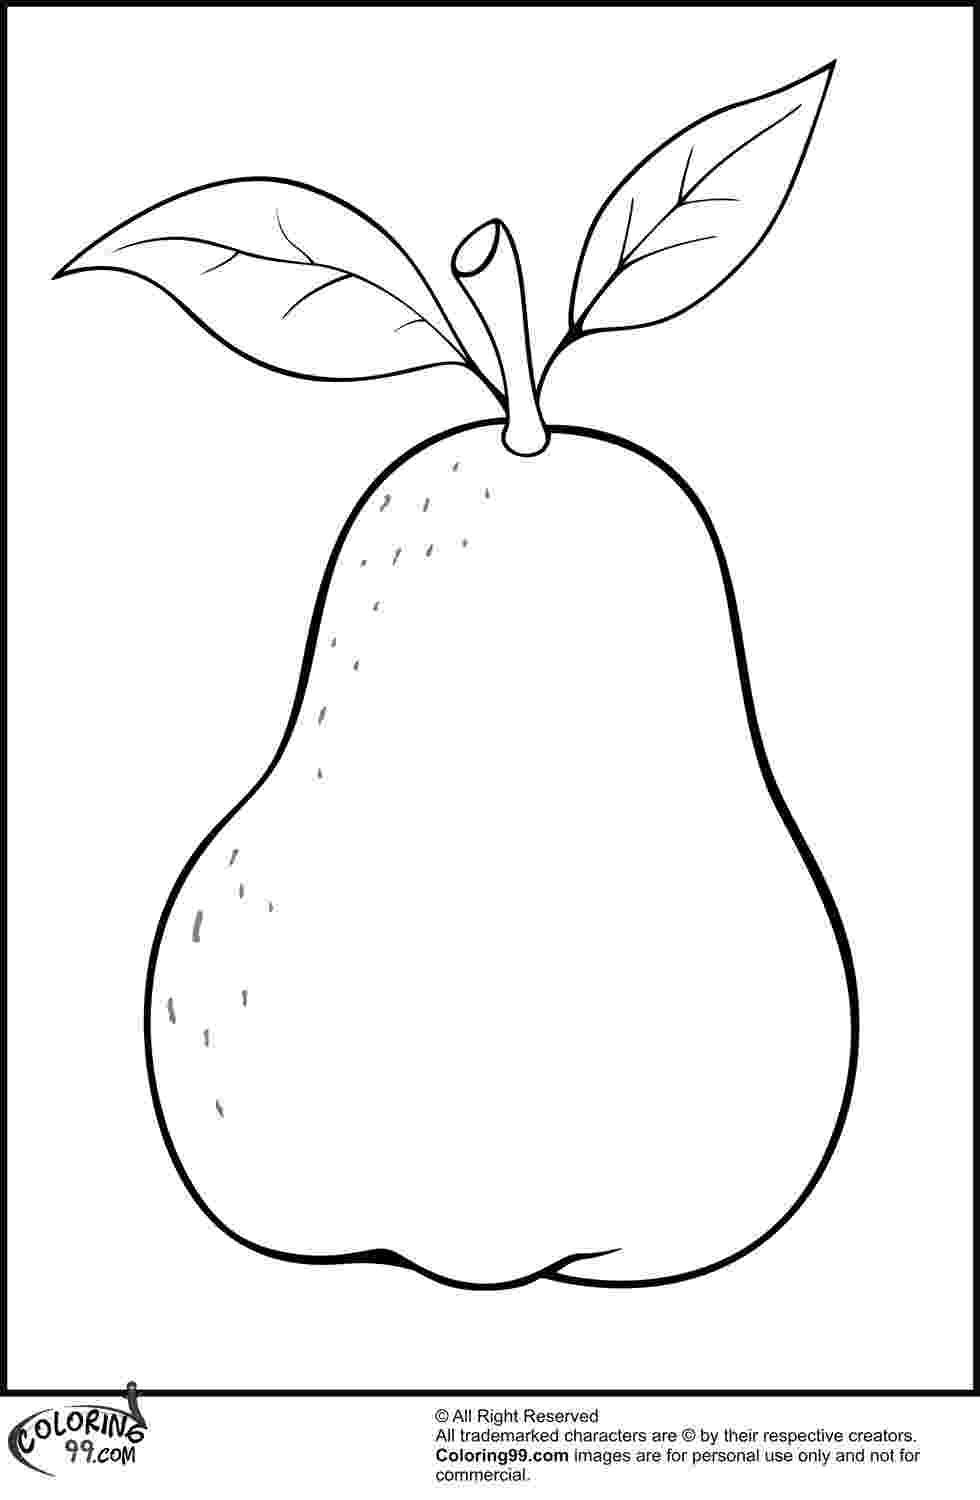 pear coloring page fruits coloring pages crafts and worksheets for coloring page pear